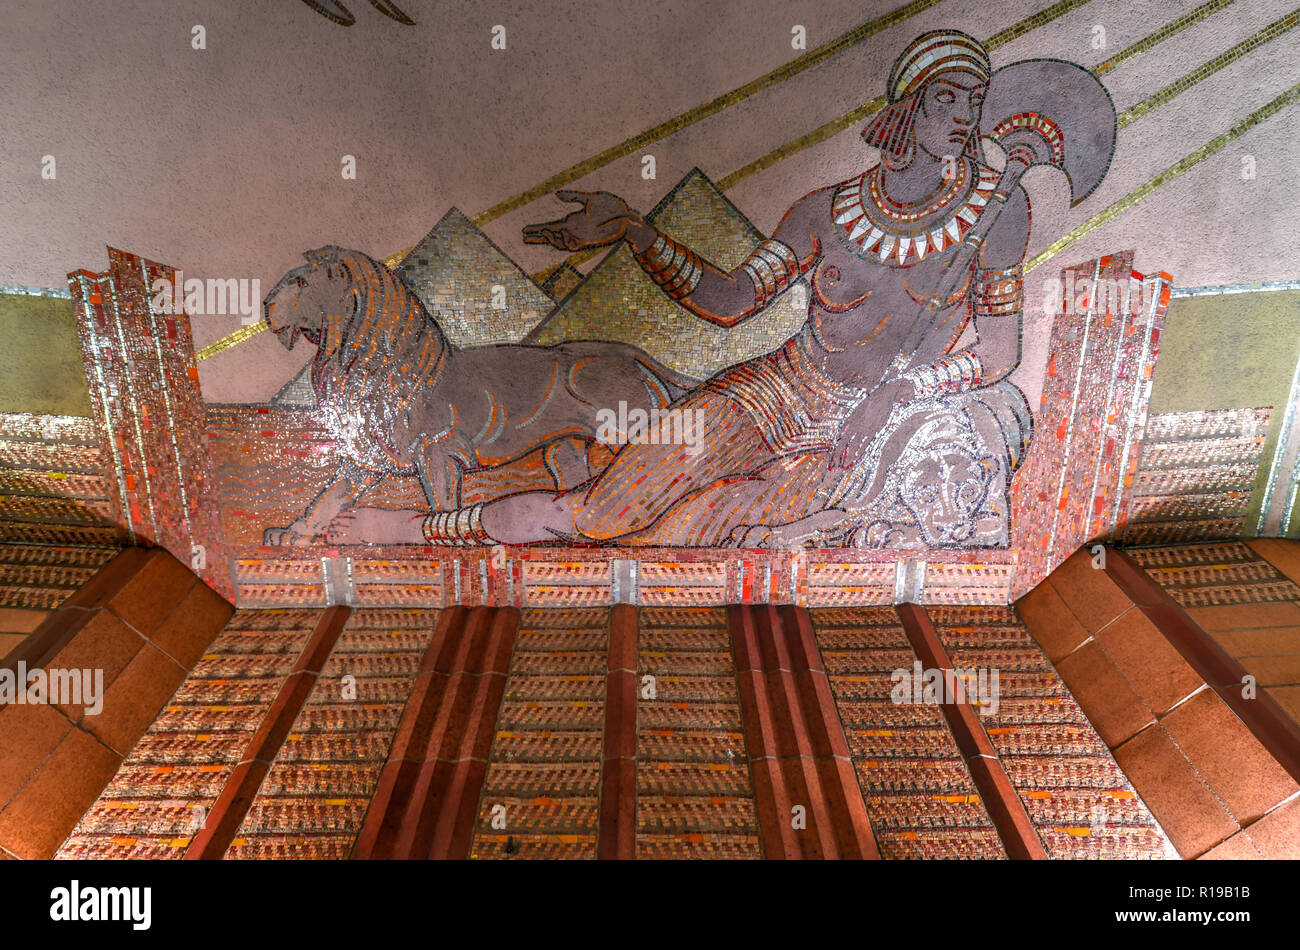 New York City - October 14, 2018: Art Deco mural in the AT&T Long Distance Building. It is a 27-story landmarked Art Deco skyscraper located in the Tr Stock Photo